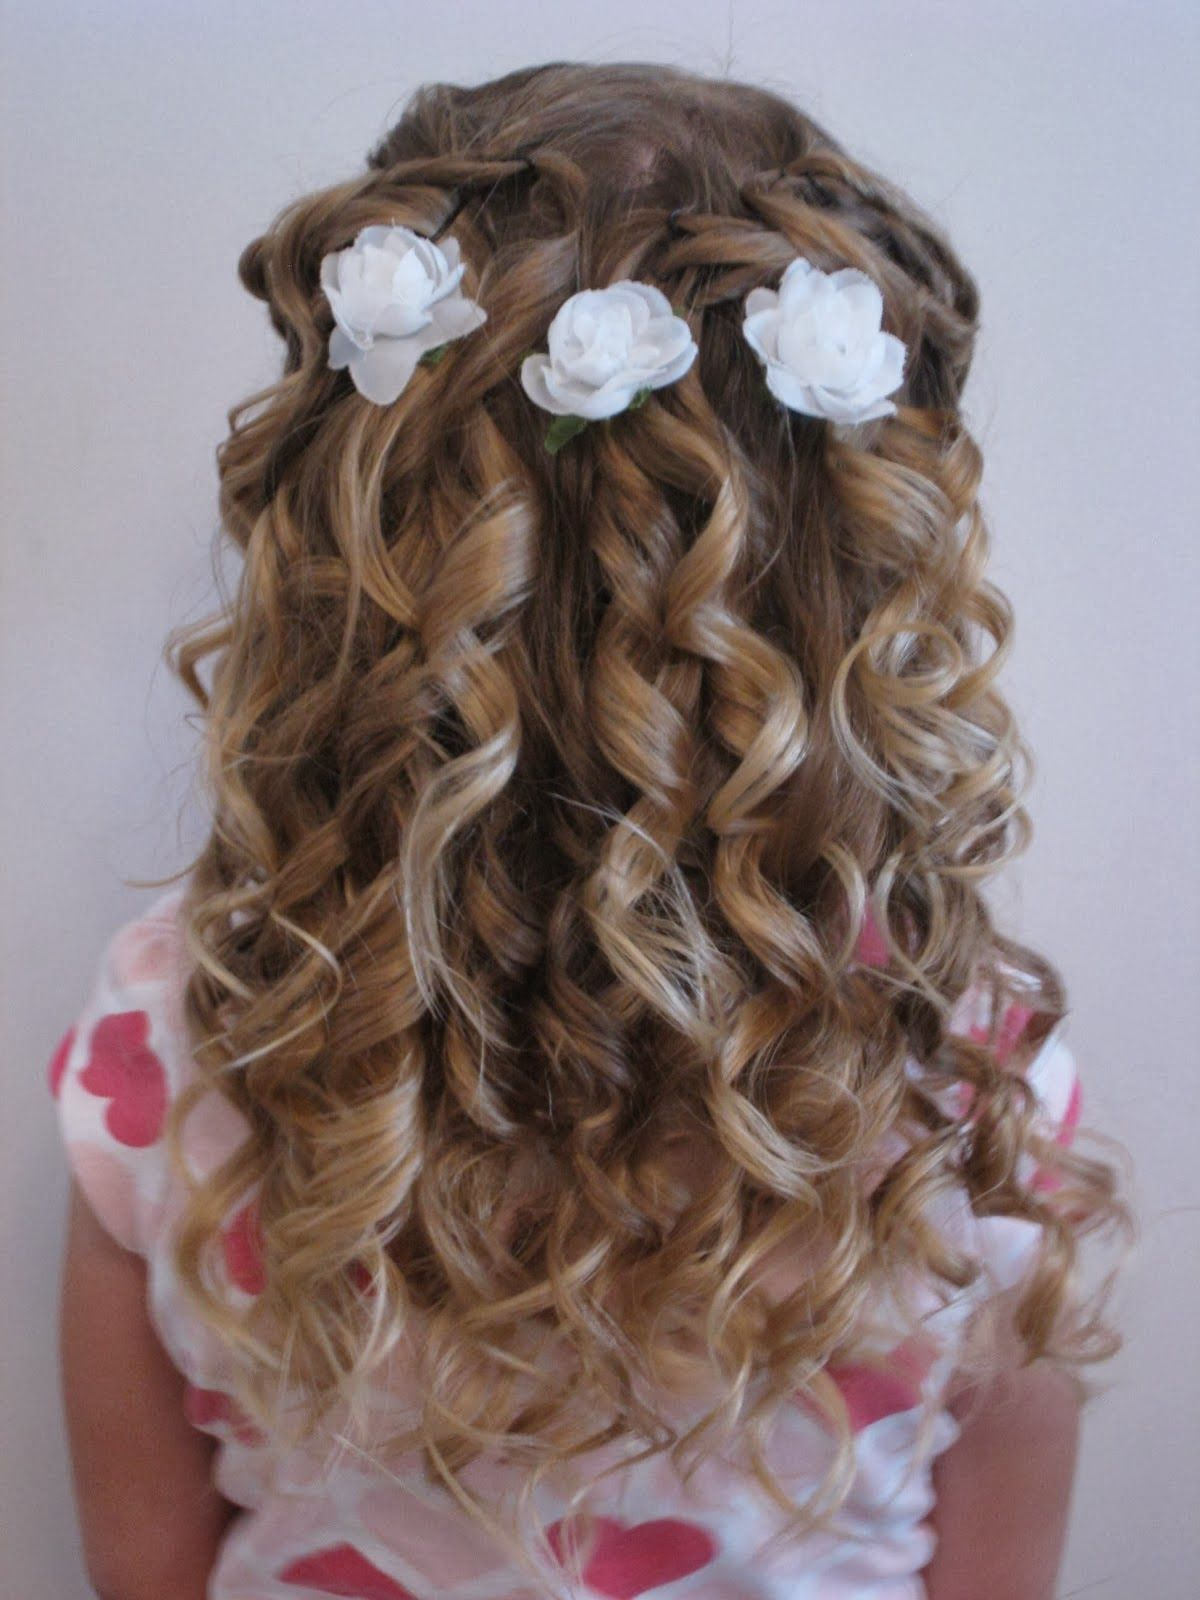 Toddler Hair Style For Wedding Life Fashion Collection